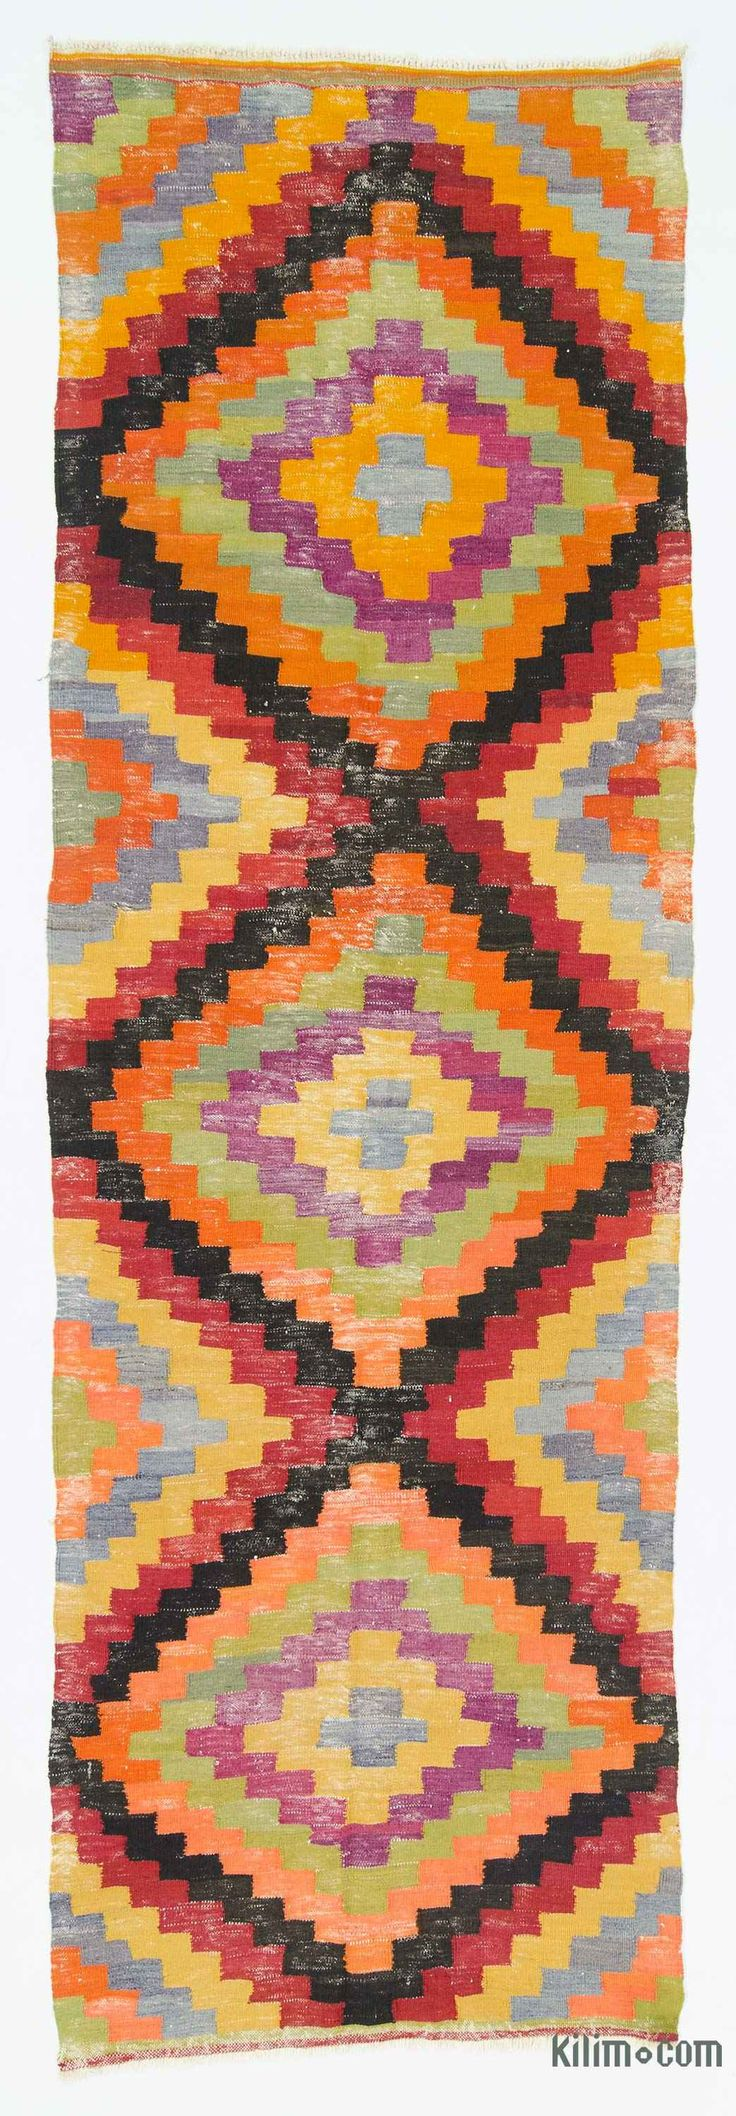 Vintage Turkish kilim rug hand-woven in 1960's. This tribal kilim is in very good condition.